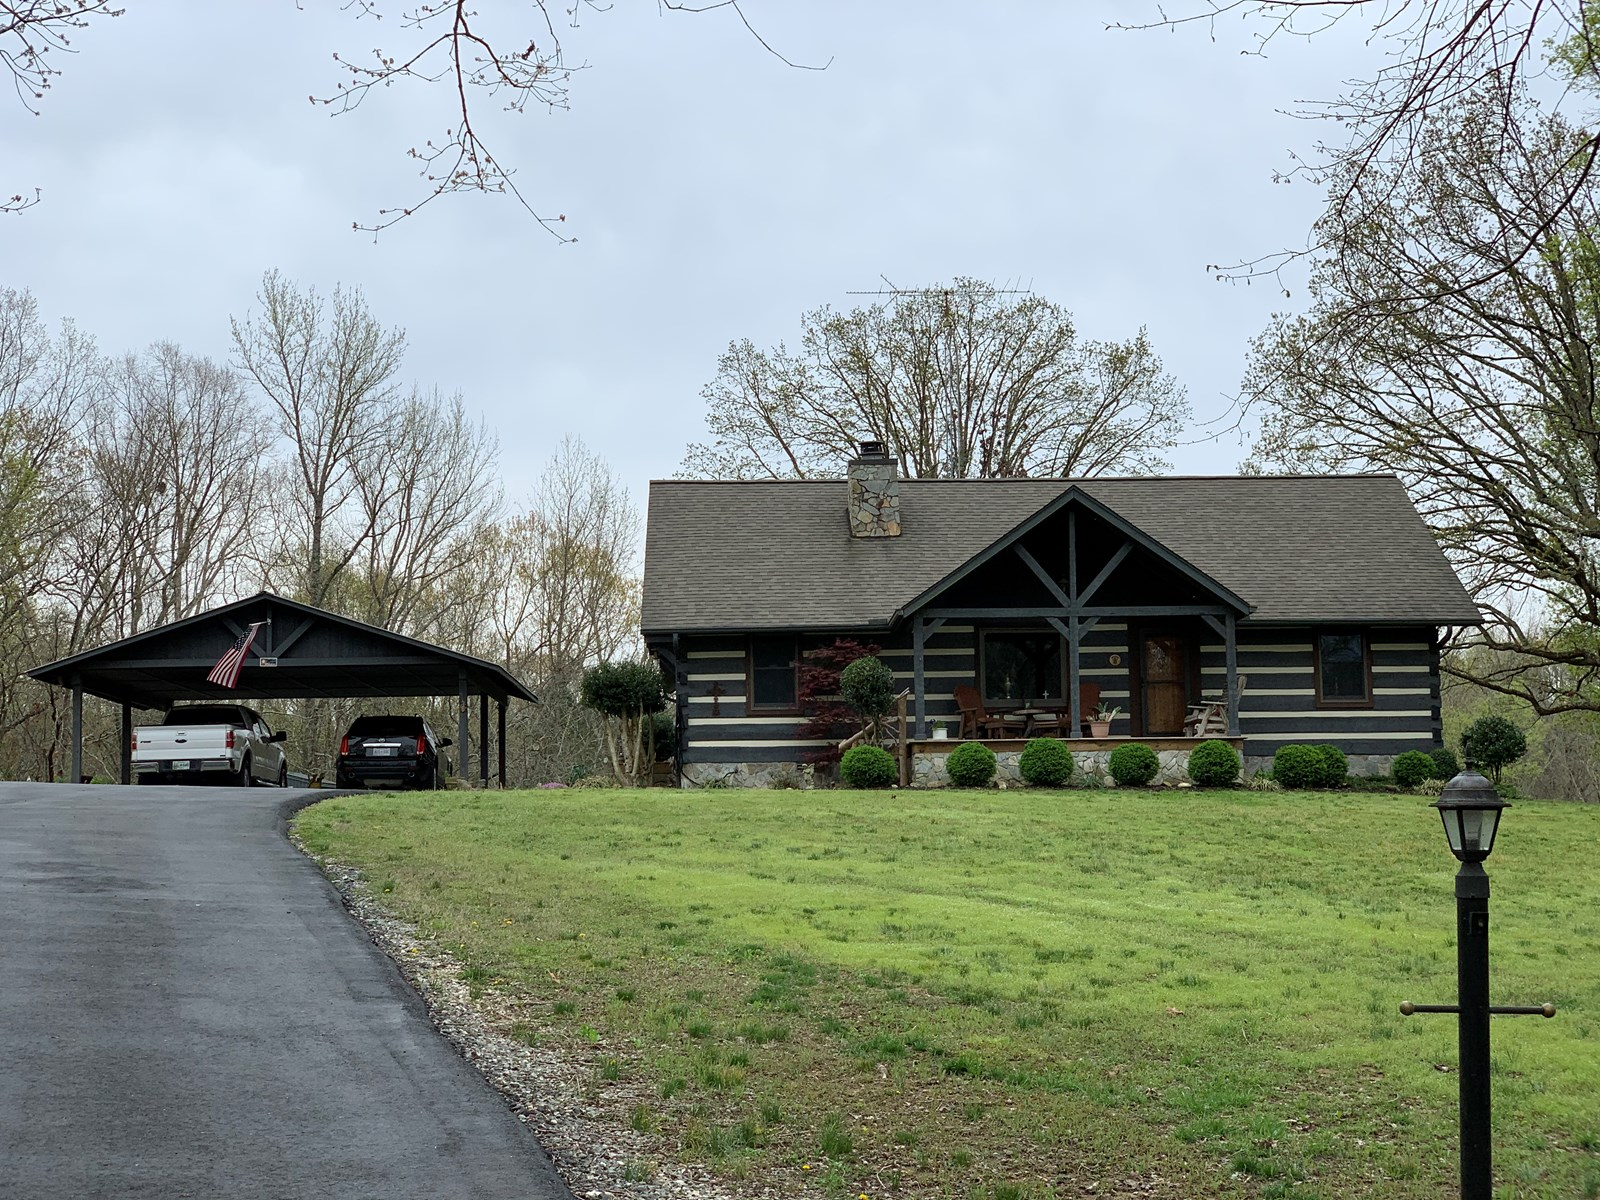 LOG HOME FOR SALE, CAMDEN TENNESSEE, NEAR KY LAKE & TN RIVER